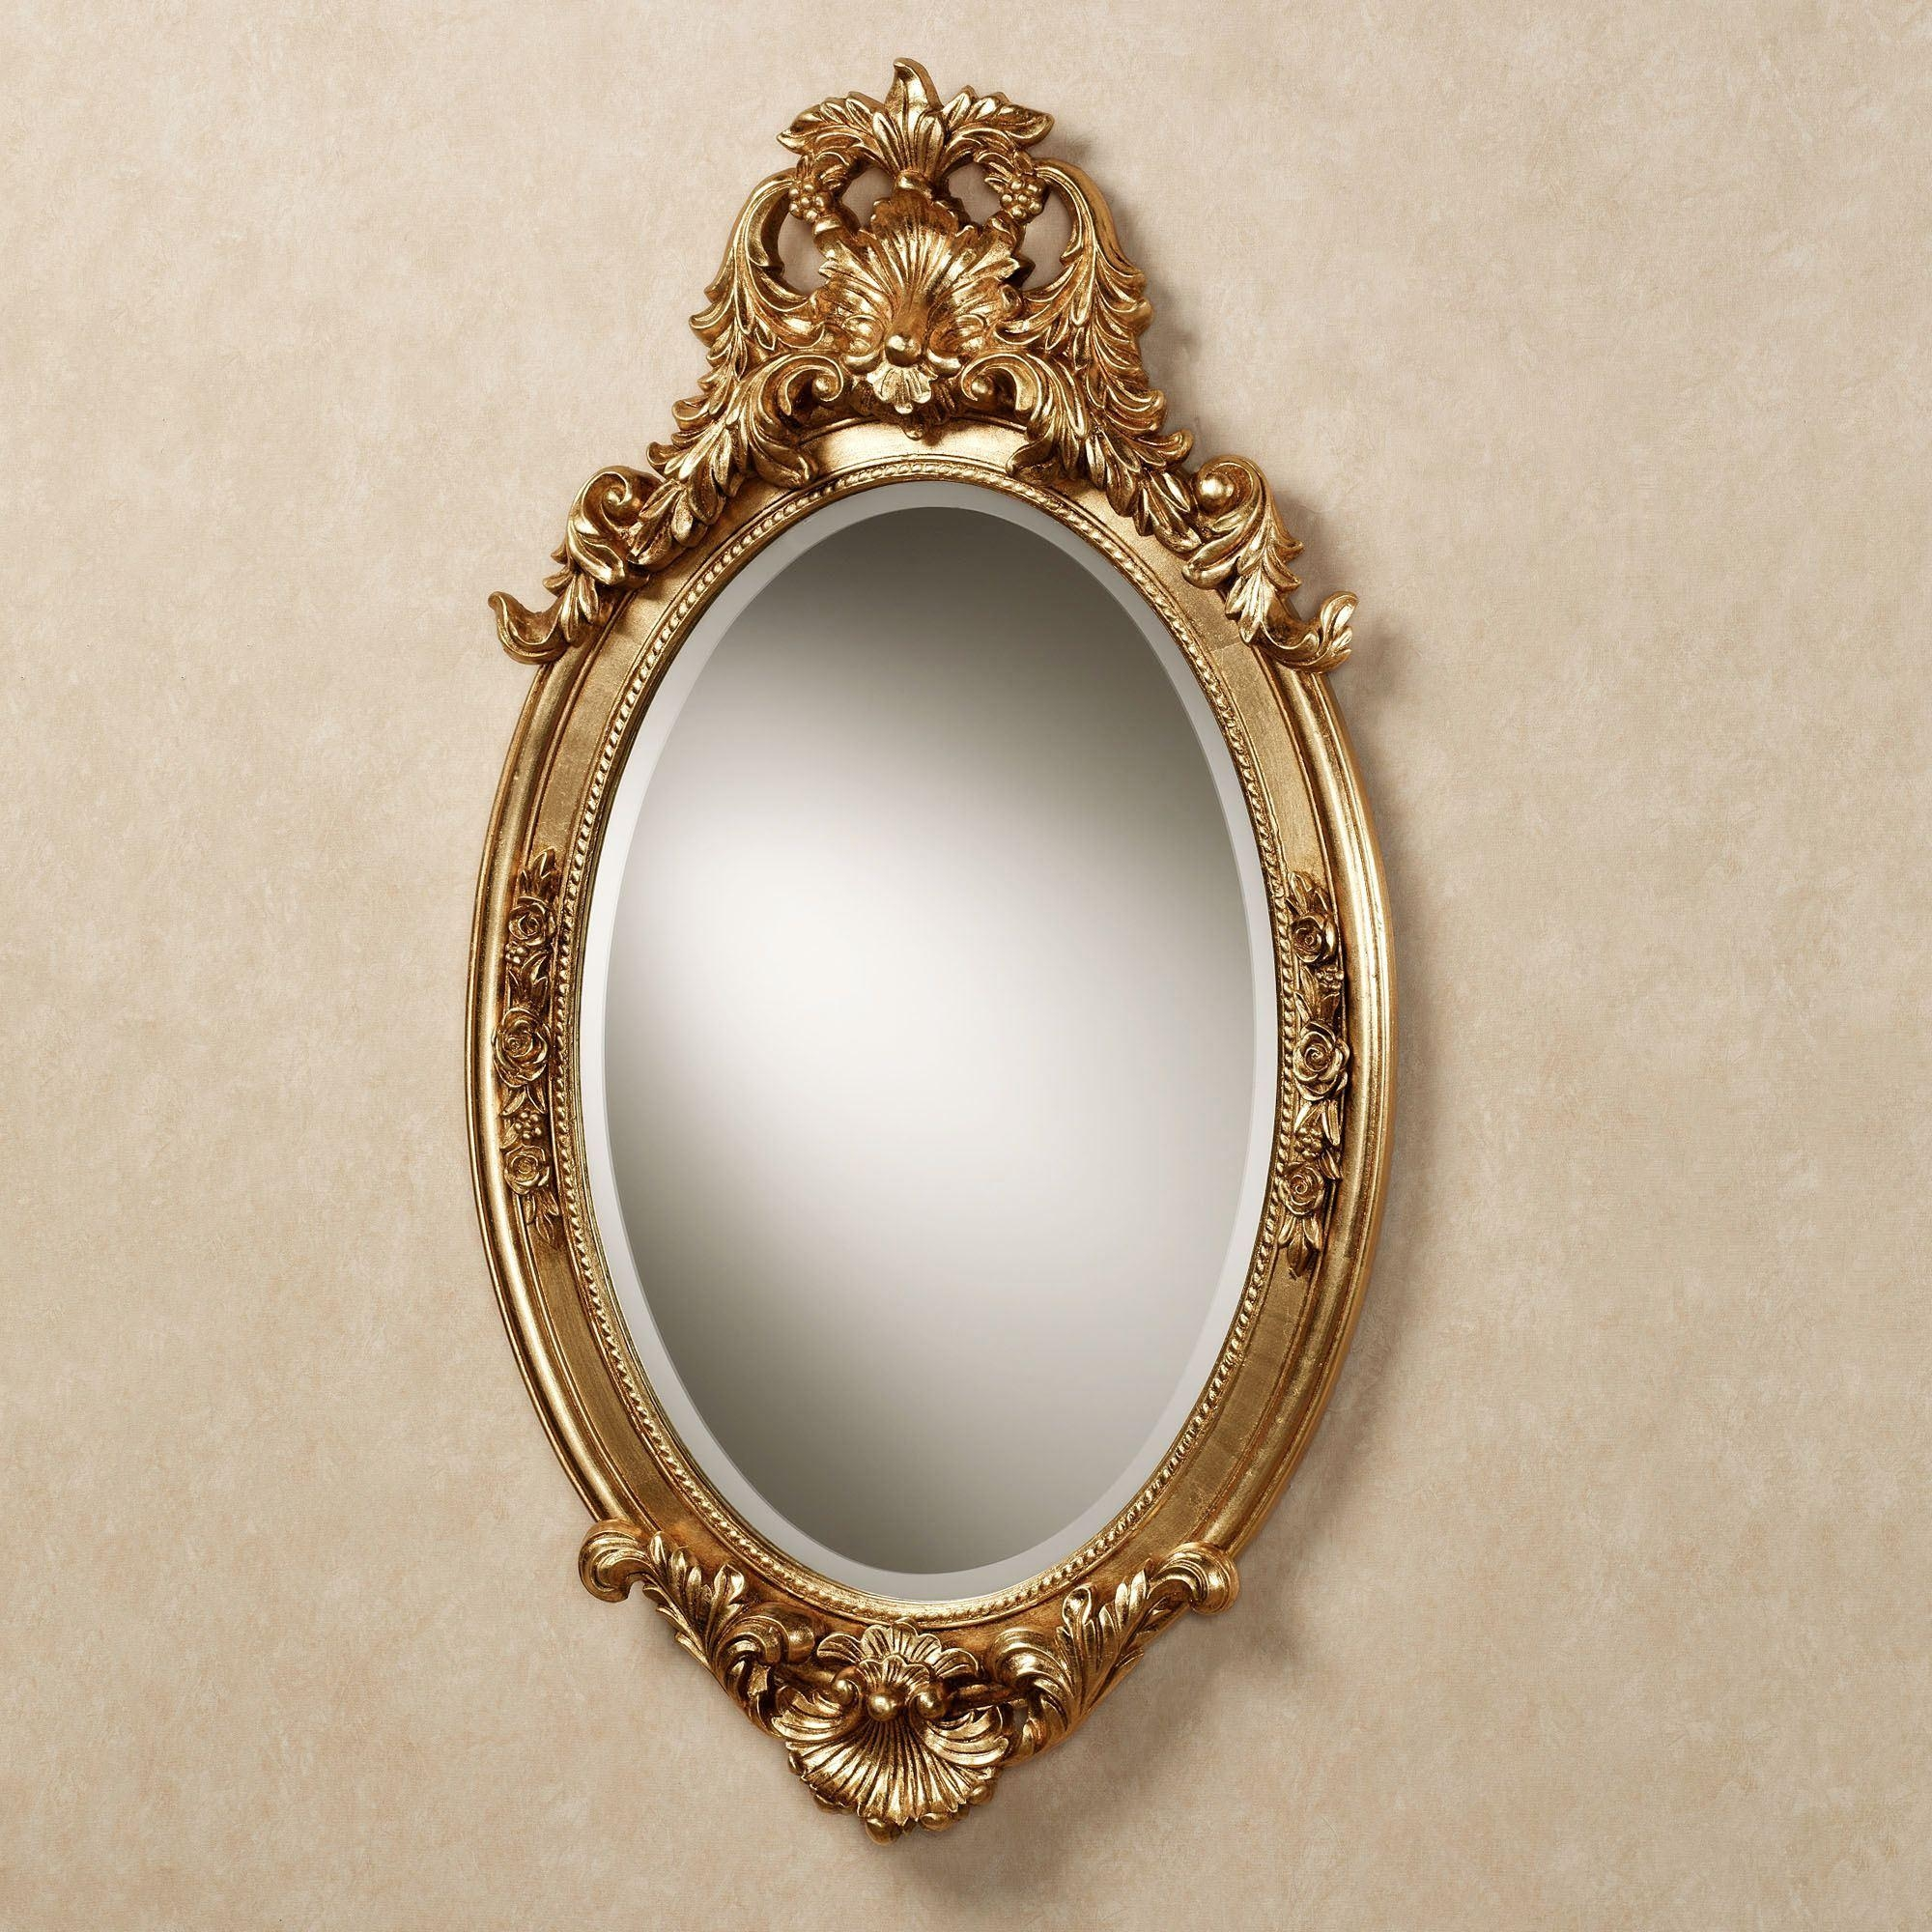 Hallandale Acanthus Leaf Oval Wall Mirror In Ornate Oval Mirrors (Image 8 of 20)